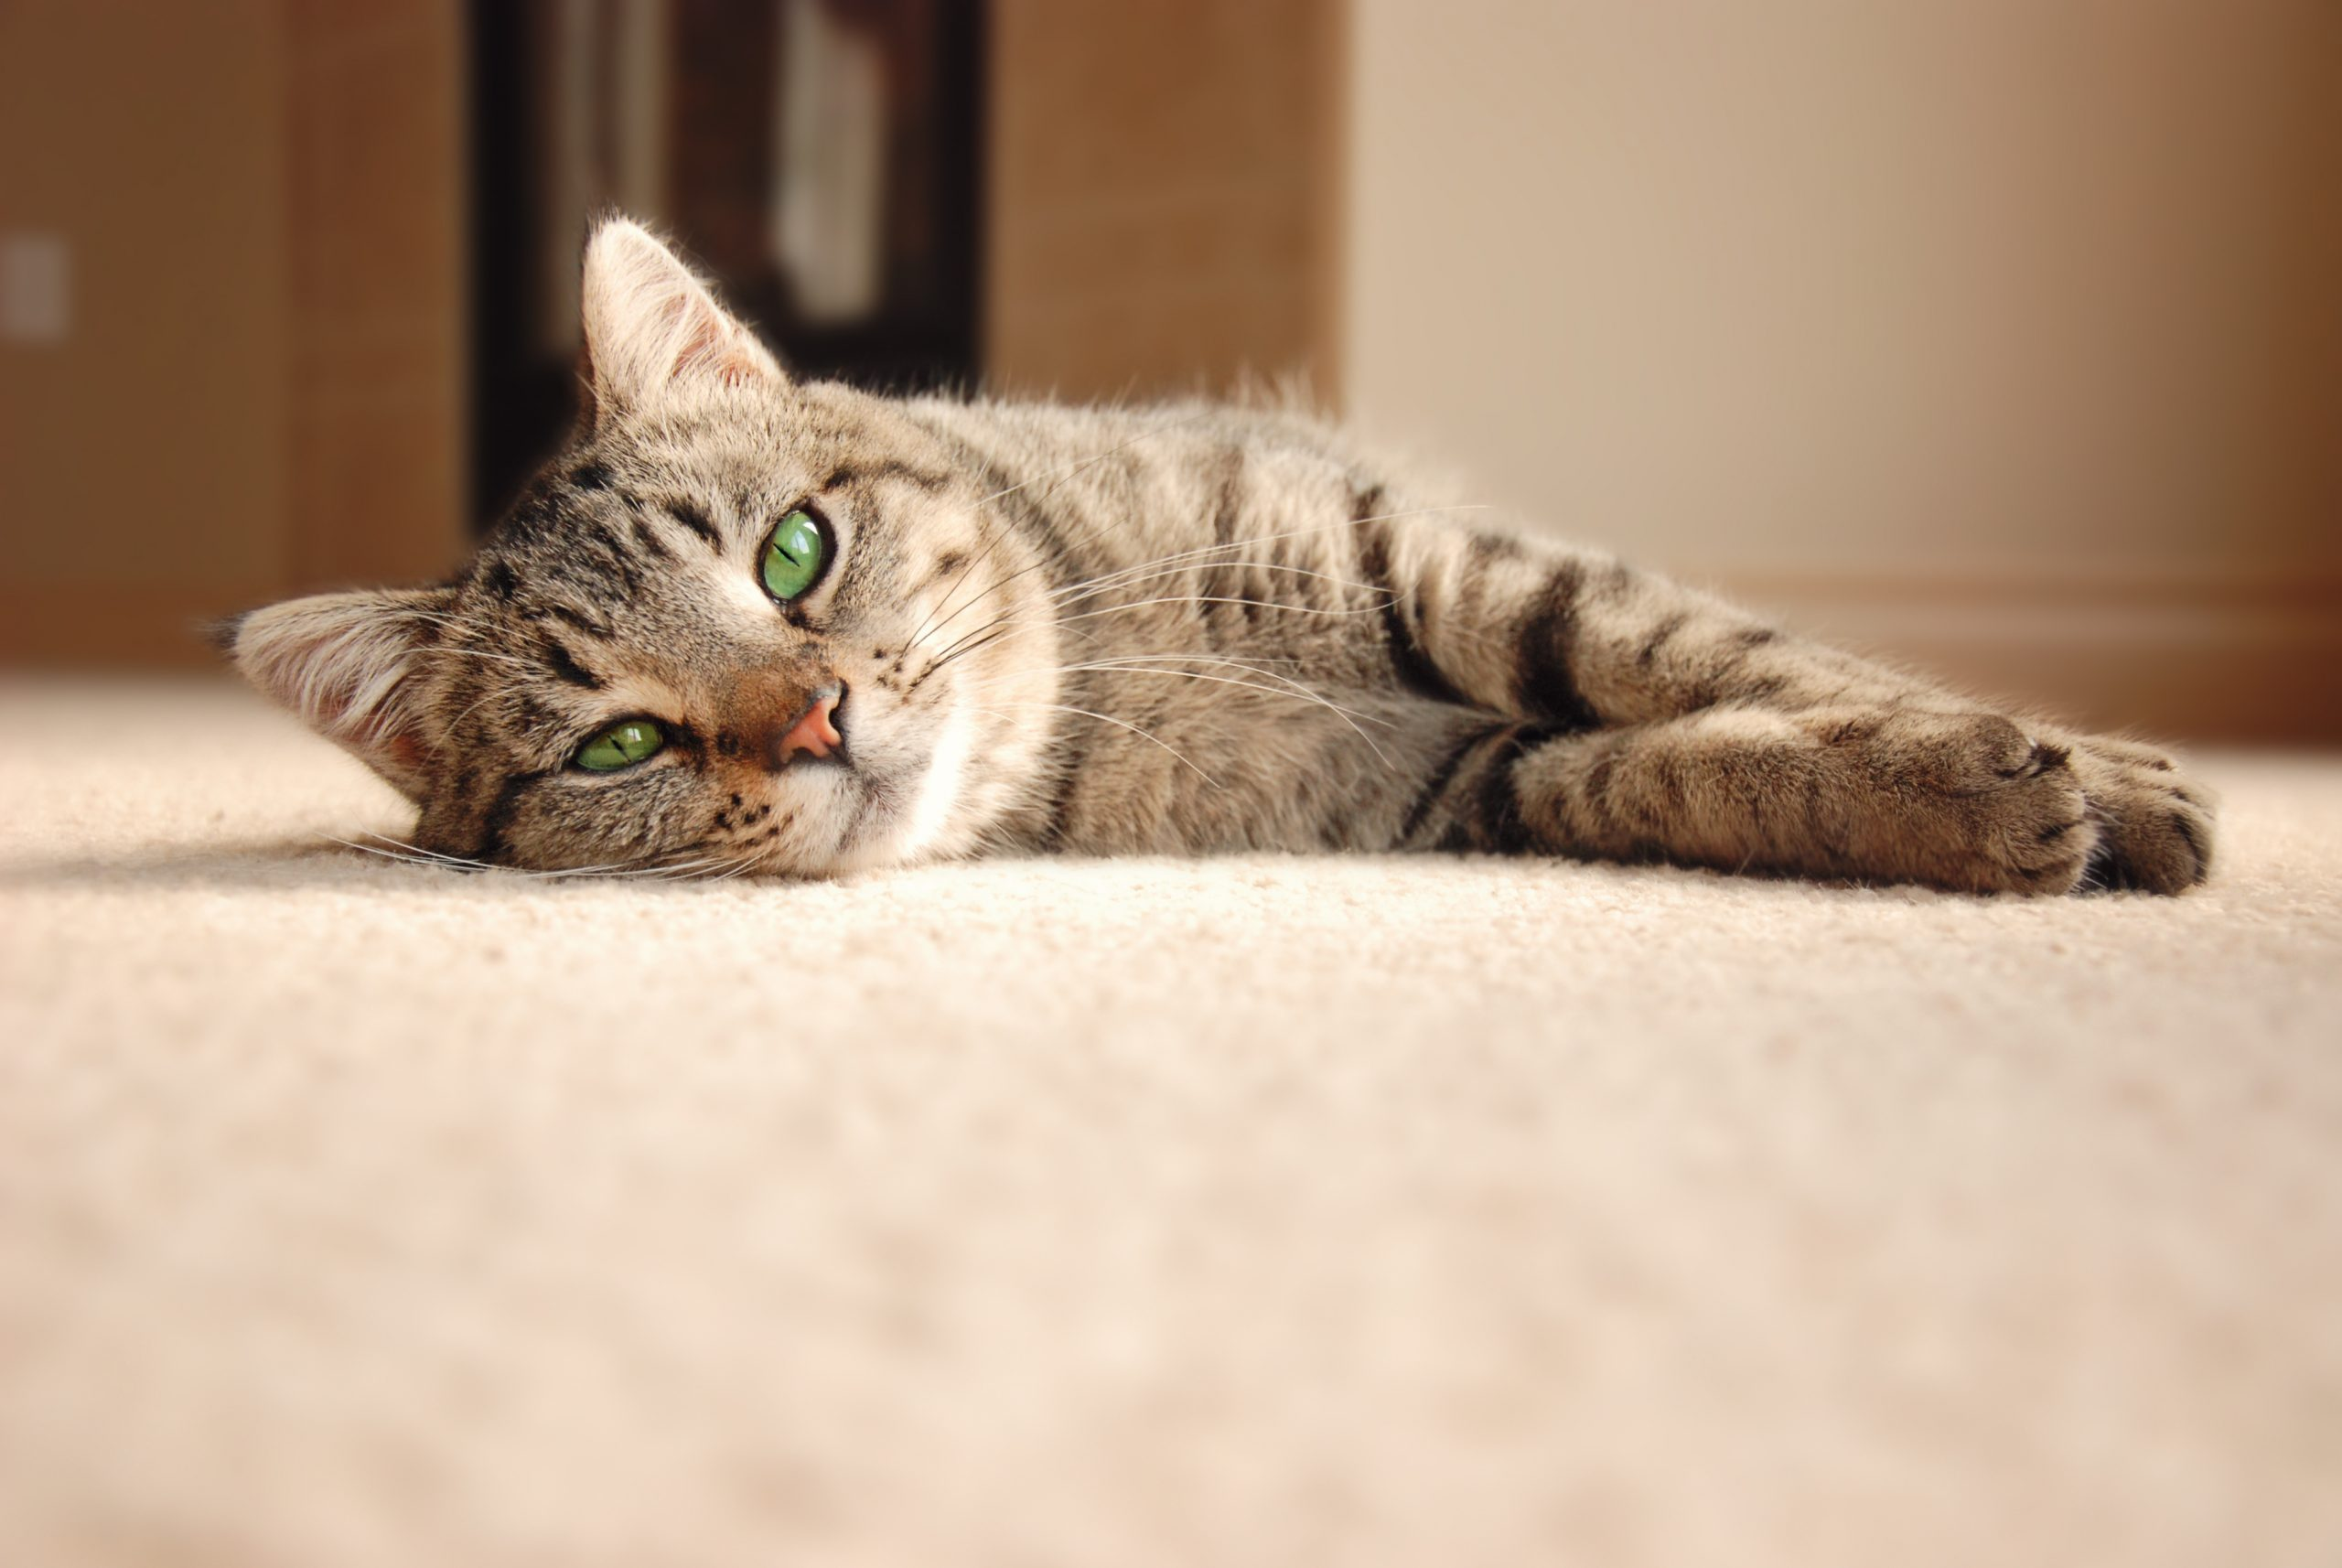 Carpet Cleaning - Cute tabby cat with green eyes laying on carpet